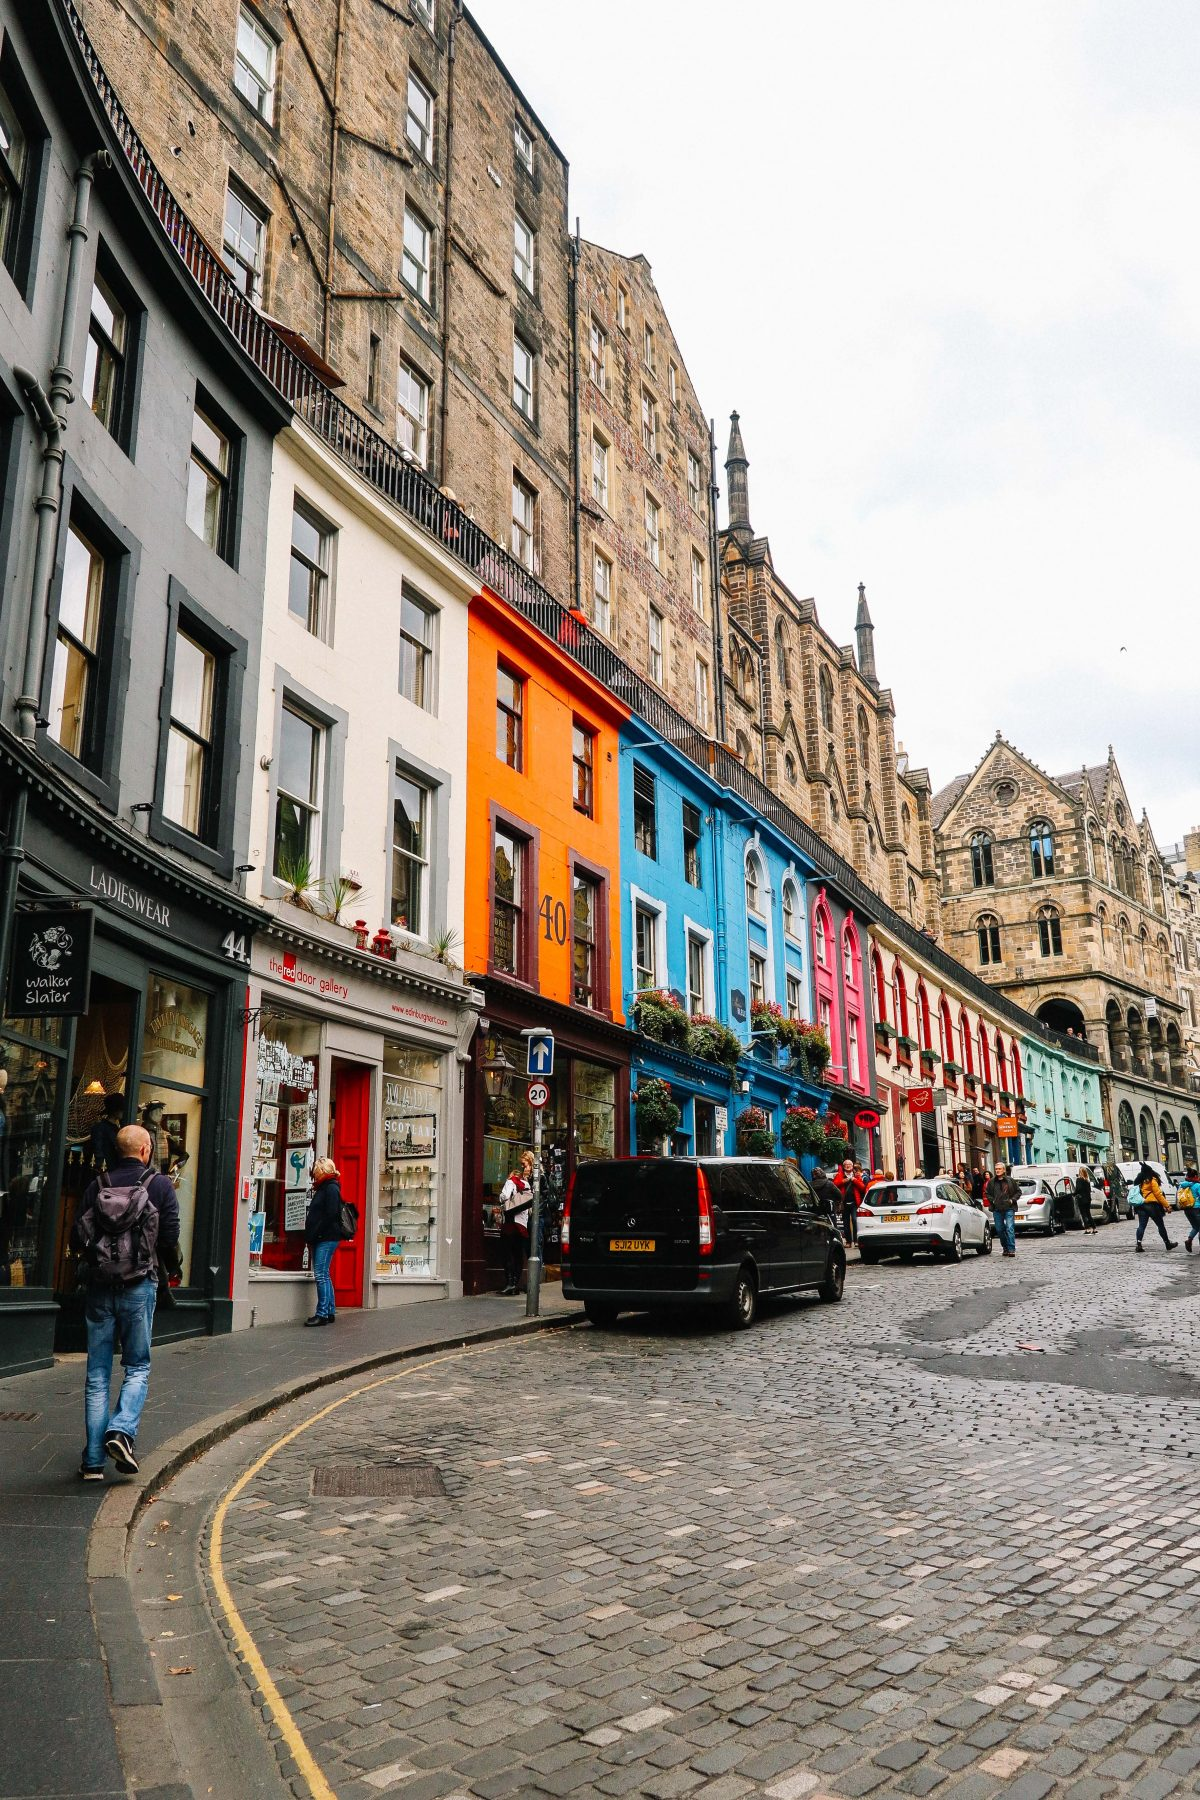 Itinerary for 2 Days in Edinburgh